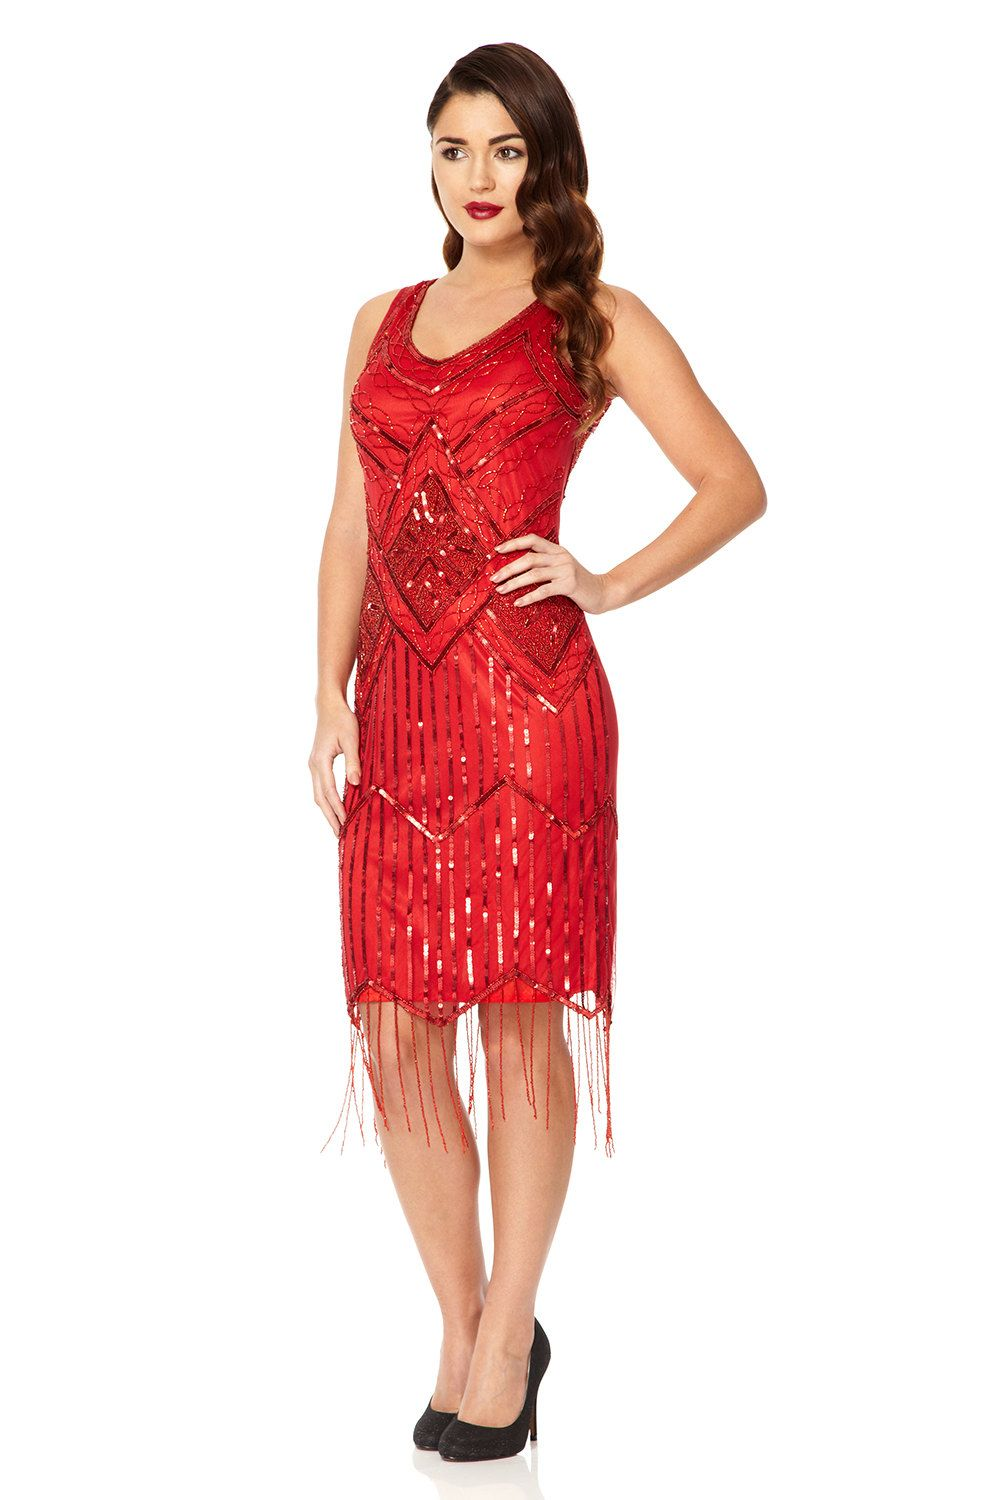 Isobel Red Vintage 1920s inspired Flapper Great Gatsby Art Deco ...